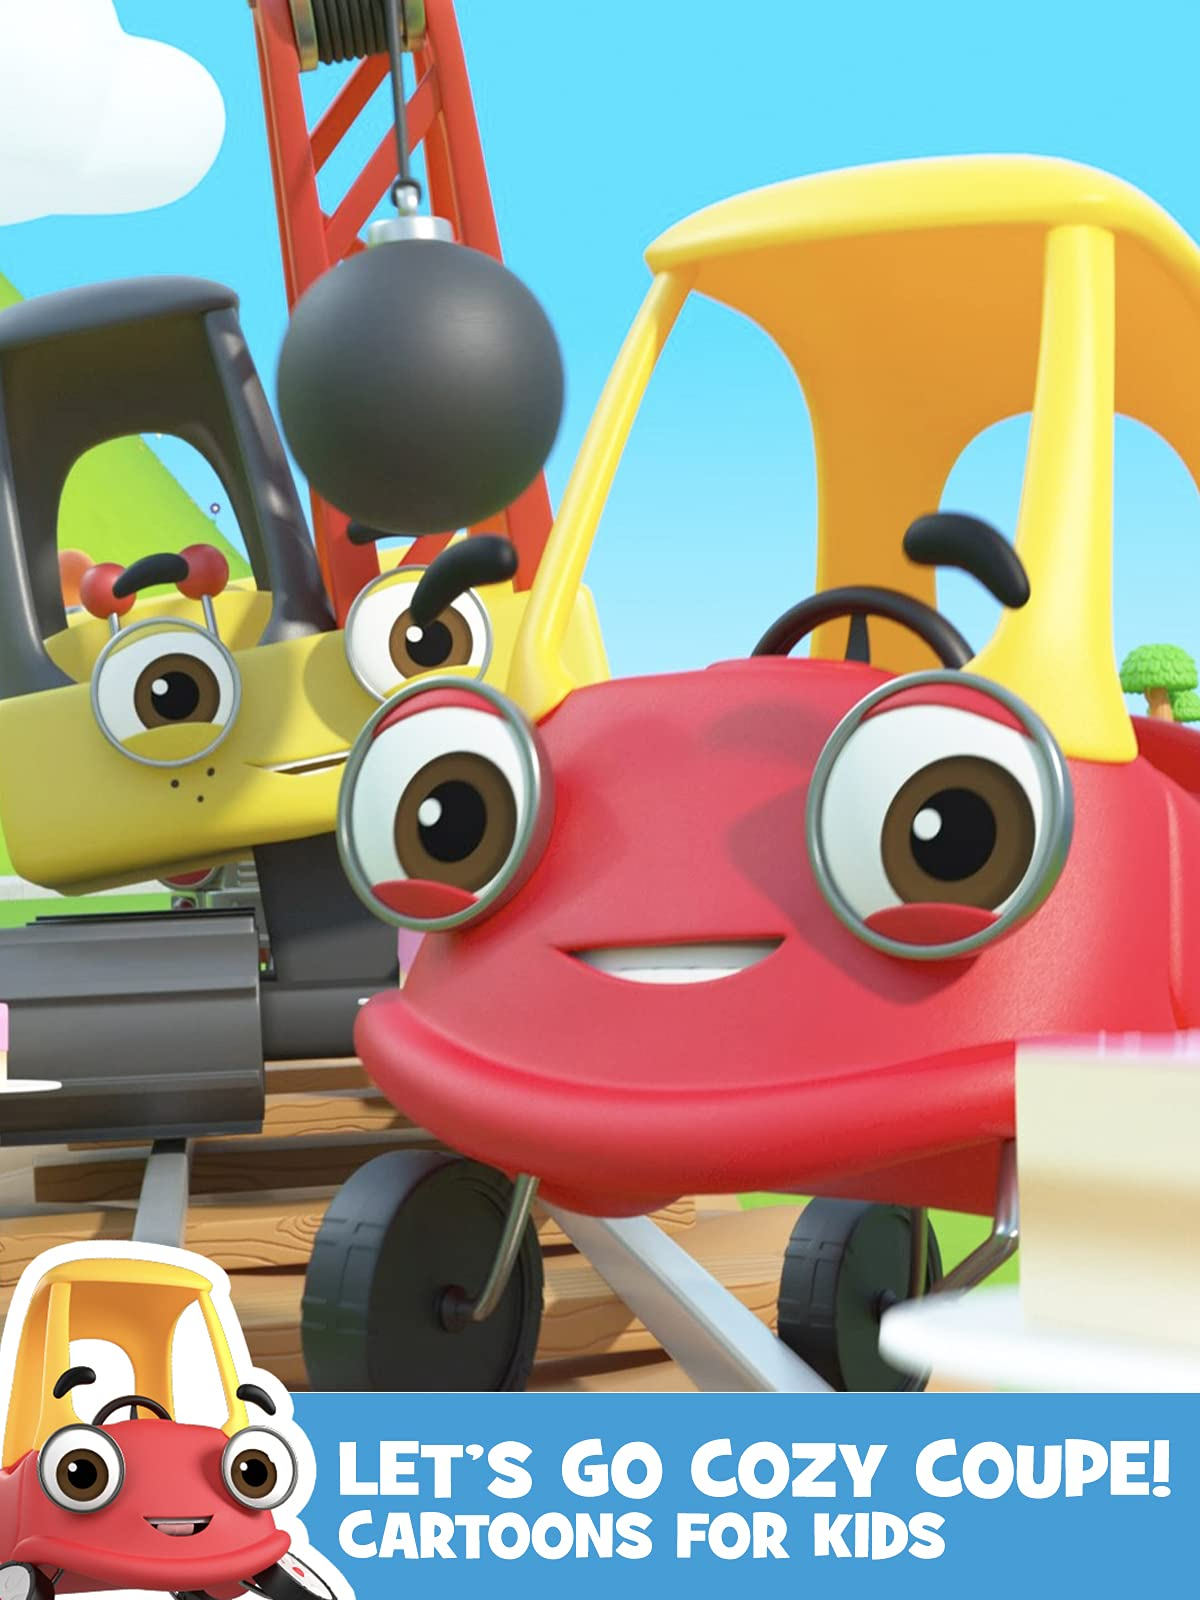 Let's Go Cozy Coupe! - Cartoons for Kids